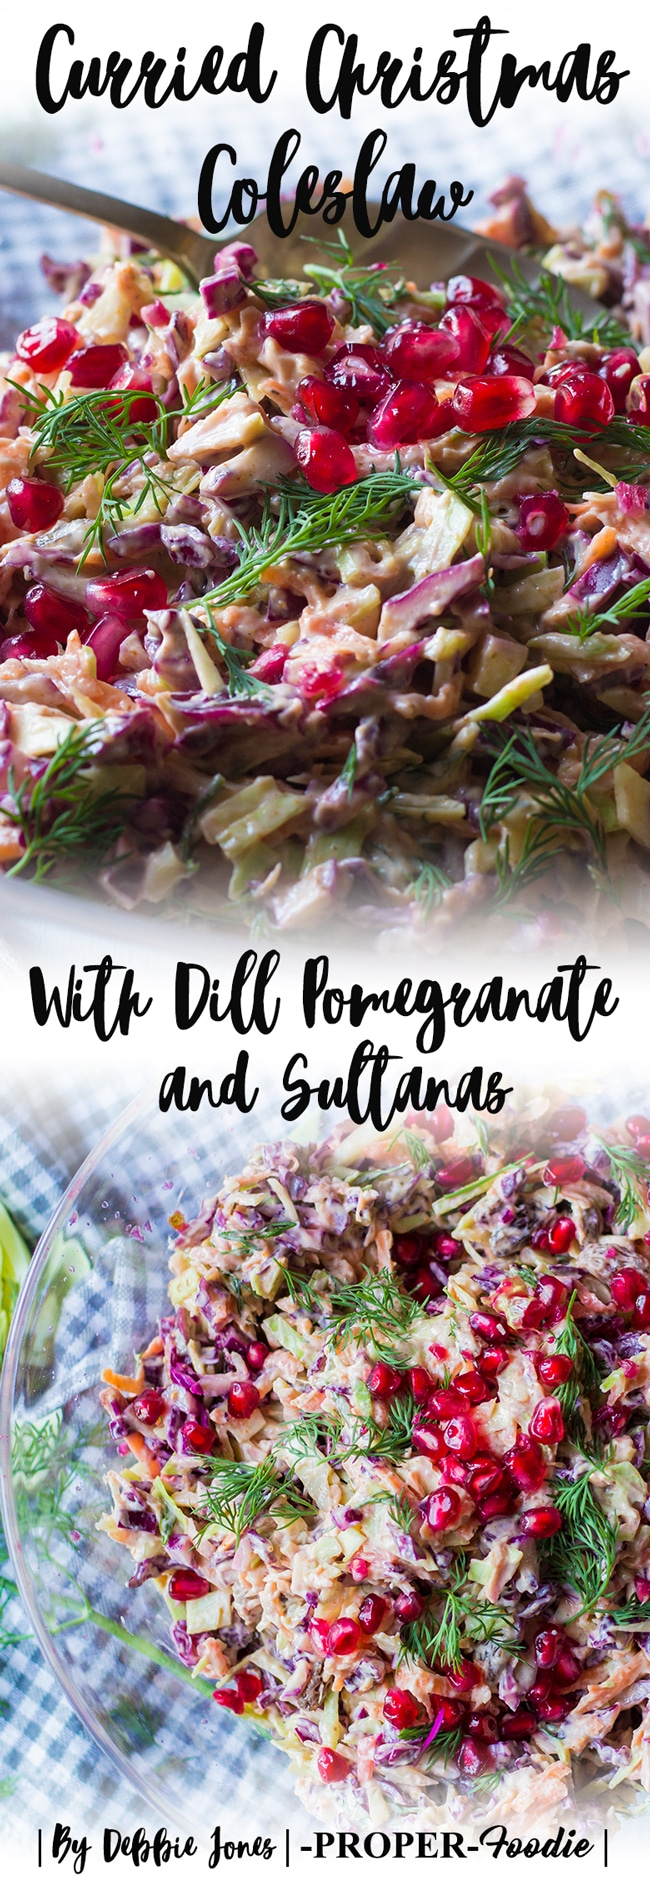 Curried Christmas Coleslaw with Dill Pomegranate and Sultanas